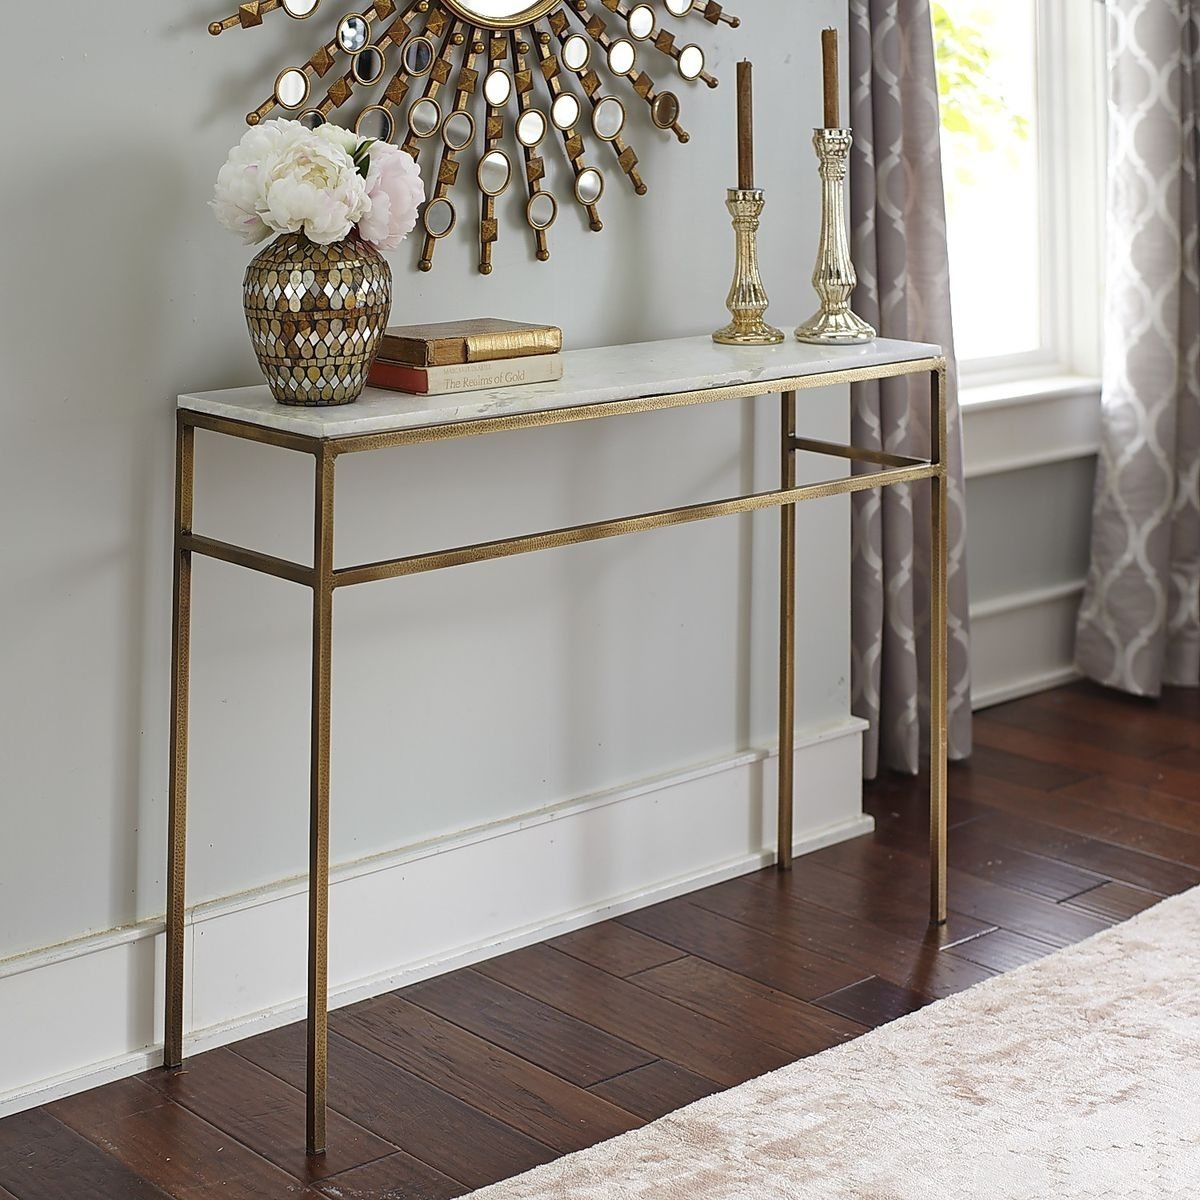 console tables Breathtaking Console Tables With Gold Brass Finish 6 Breathtaking Console Tables With Gold Brass Finish